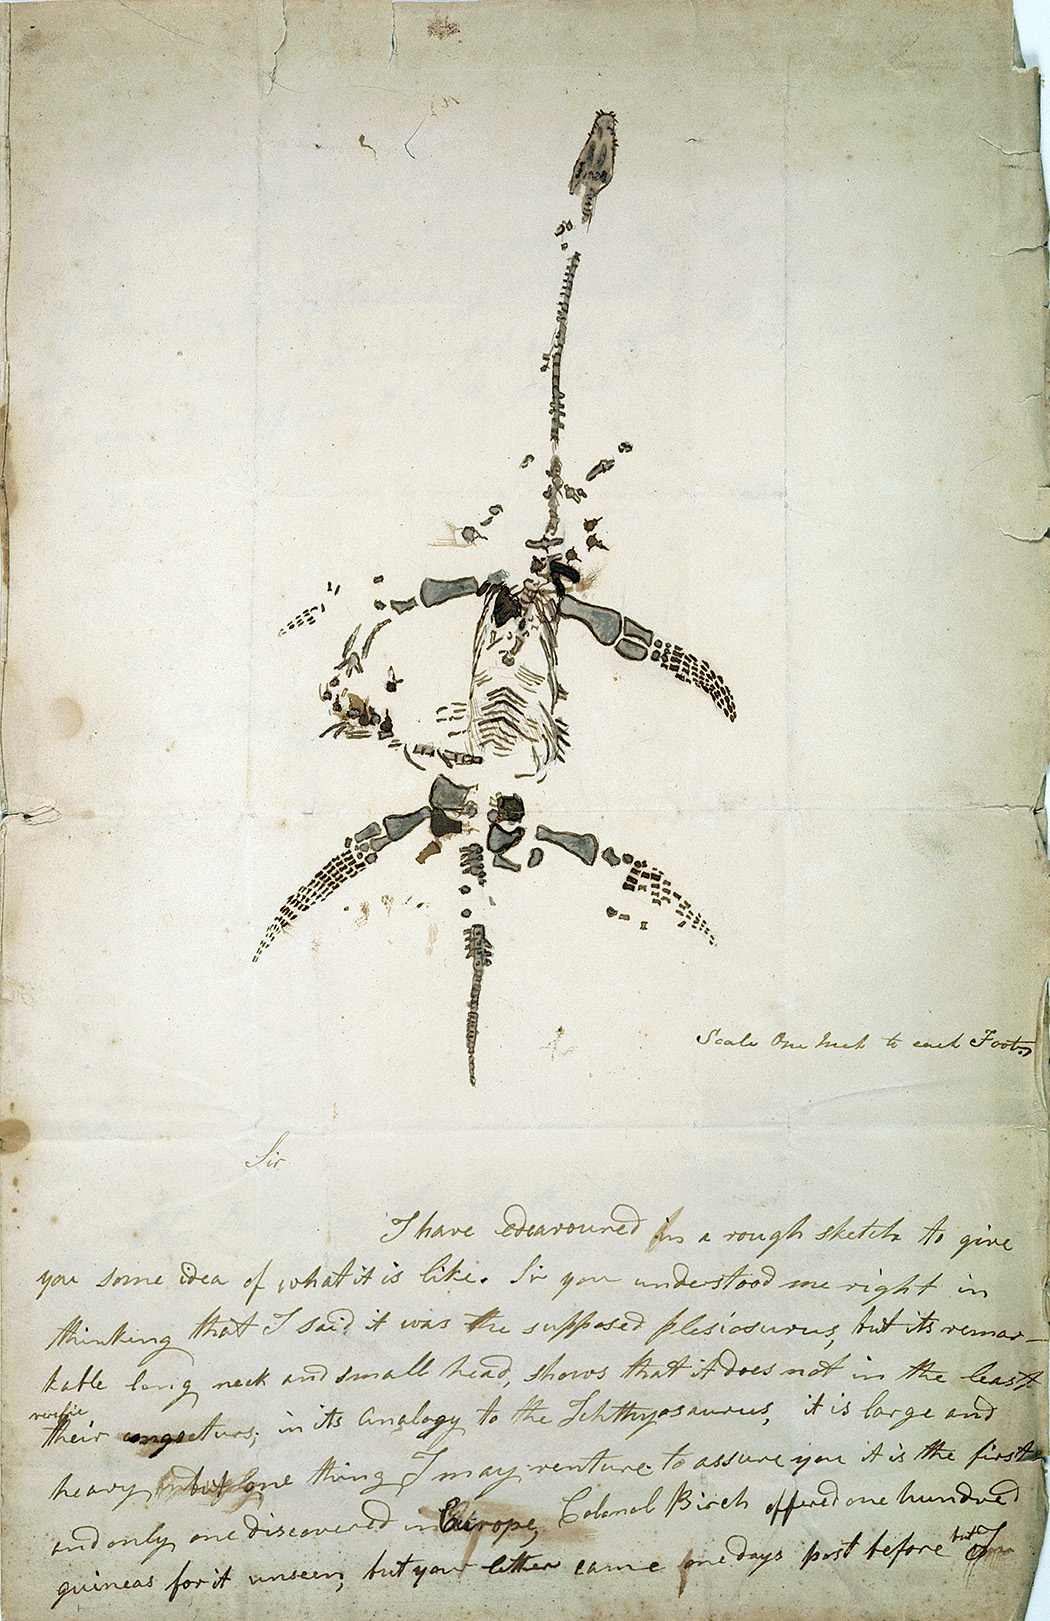 Letter concerning the discovery of plesiosaurus, from Mary Anning